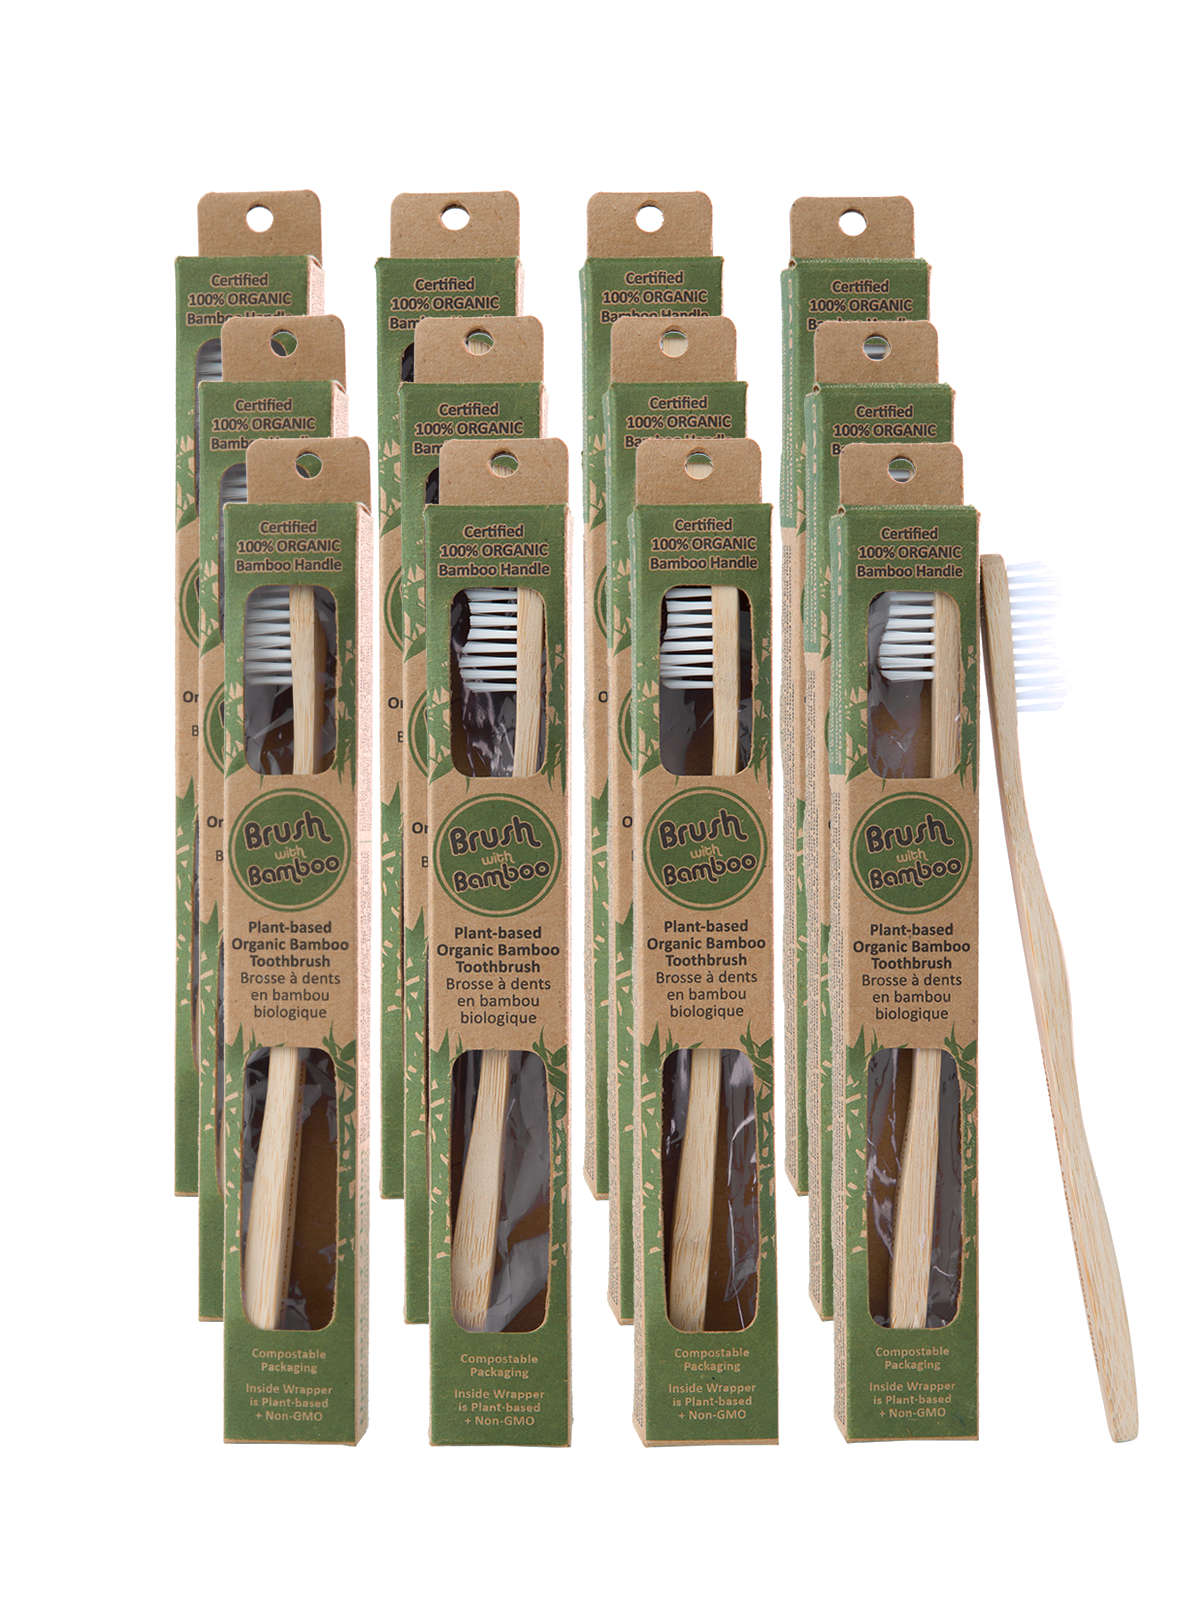 https://www.brushwithbamboo.com/